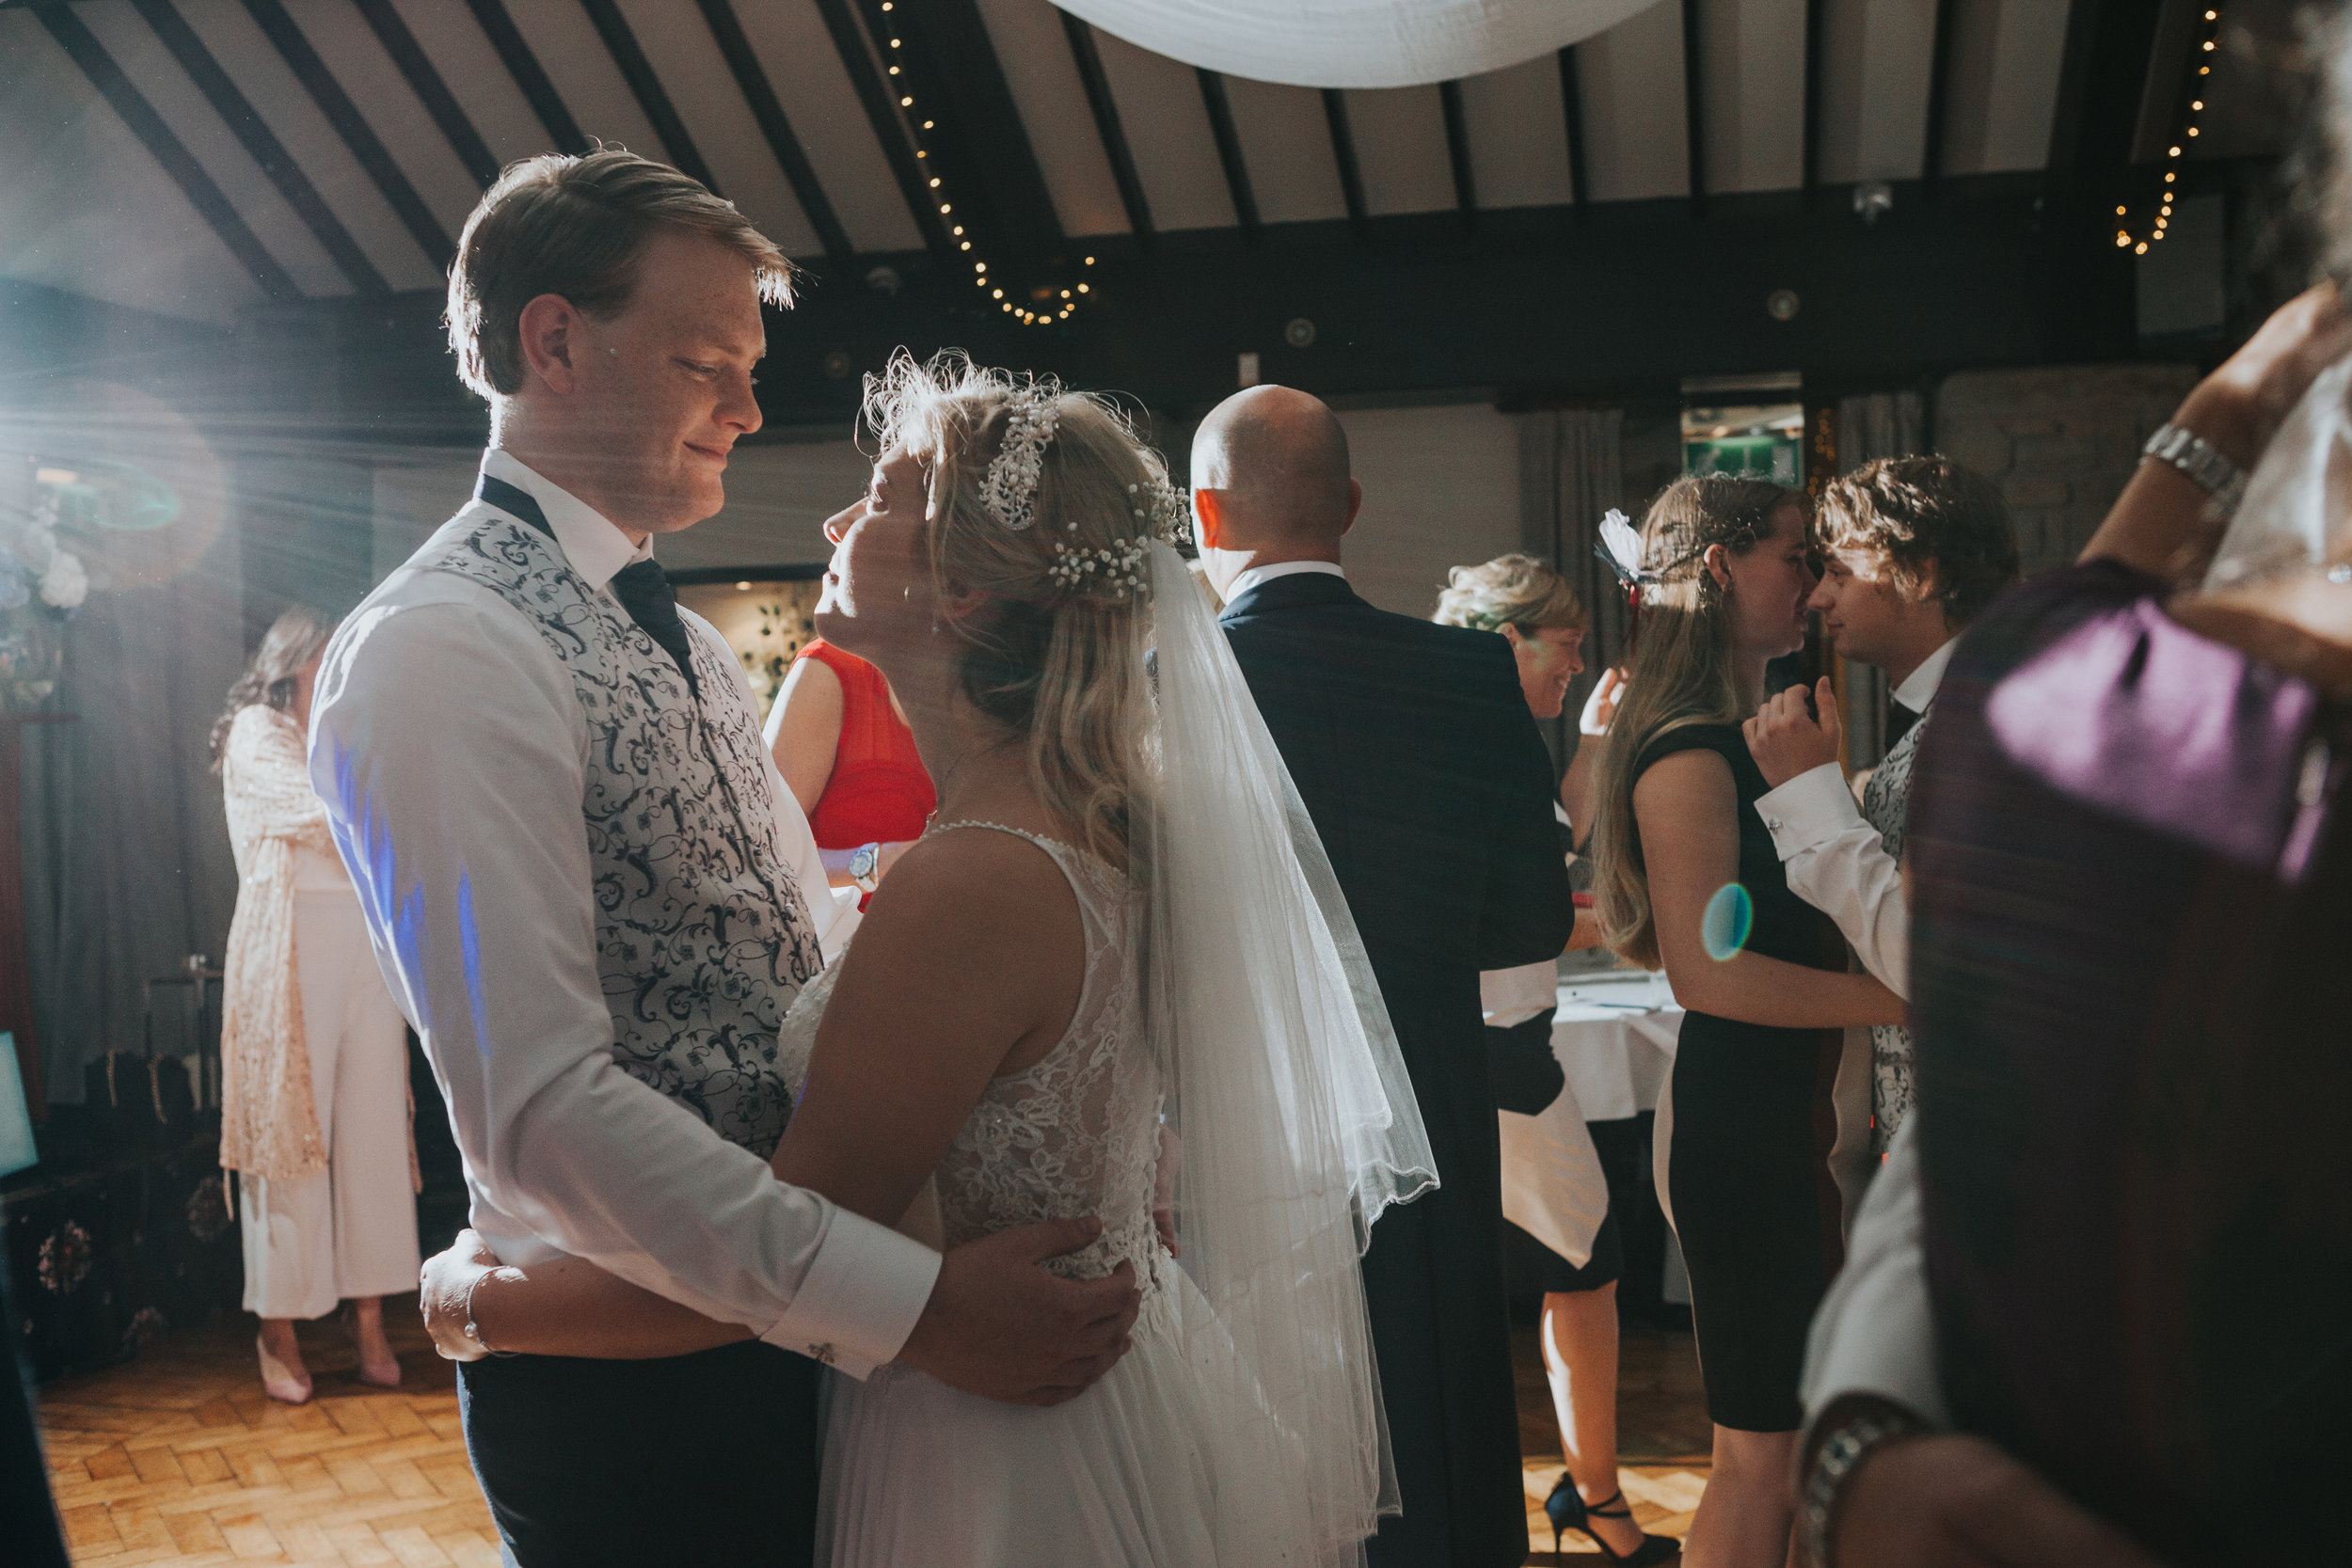 Bride and Groom look into each others eyes while dancing together.